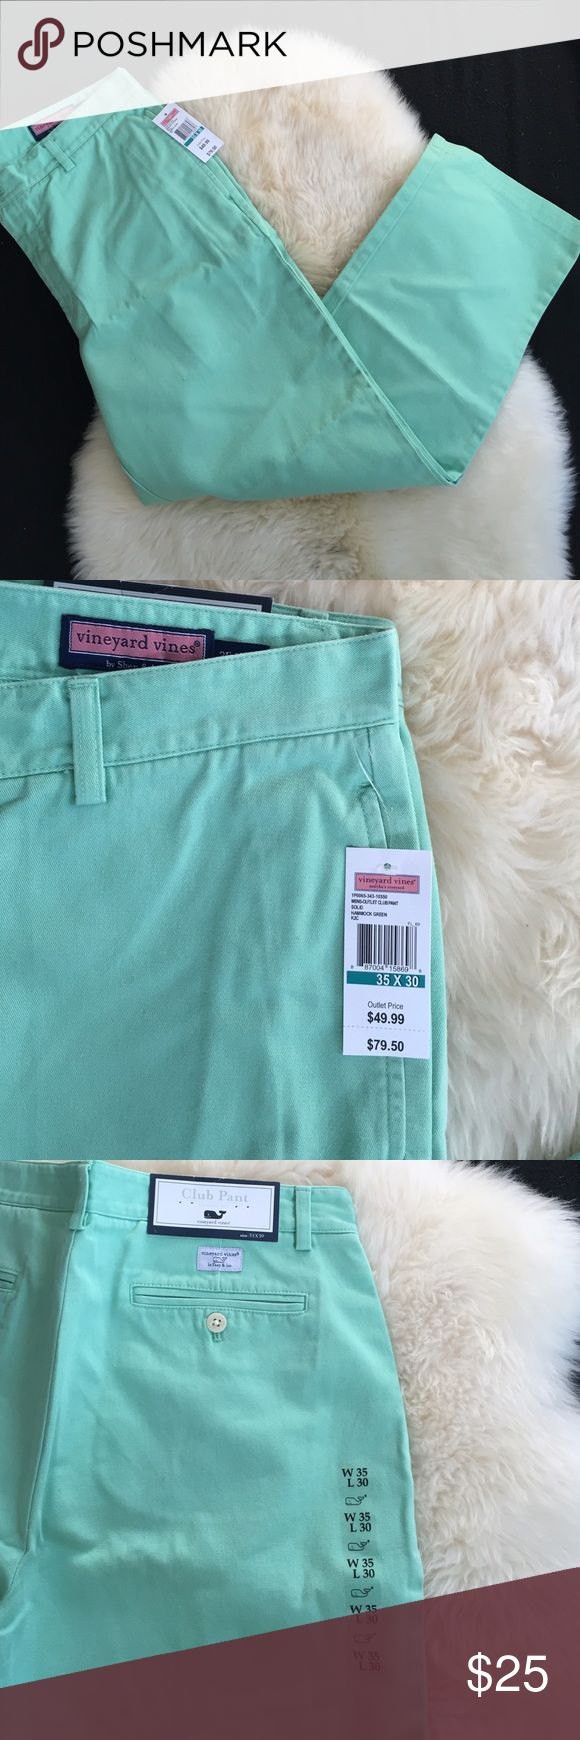 Vineyard Vines NWT men's club pant 35x30 mint NWT Vineyard Vines Men's club pant from the outlet in Hammock Green (mint..color is a little more green in person). Size 35x30 Vineyard Vines Pants Chinos & Khakis